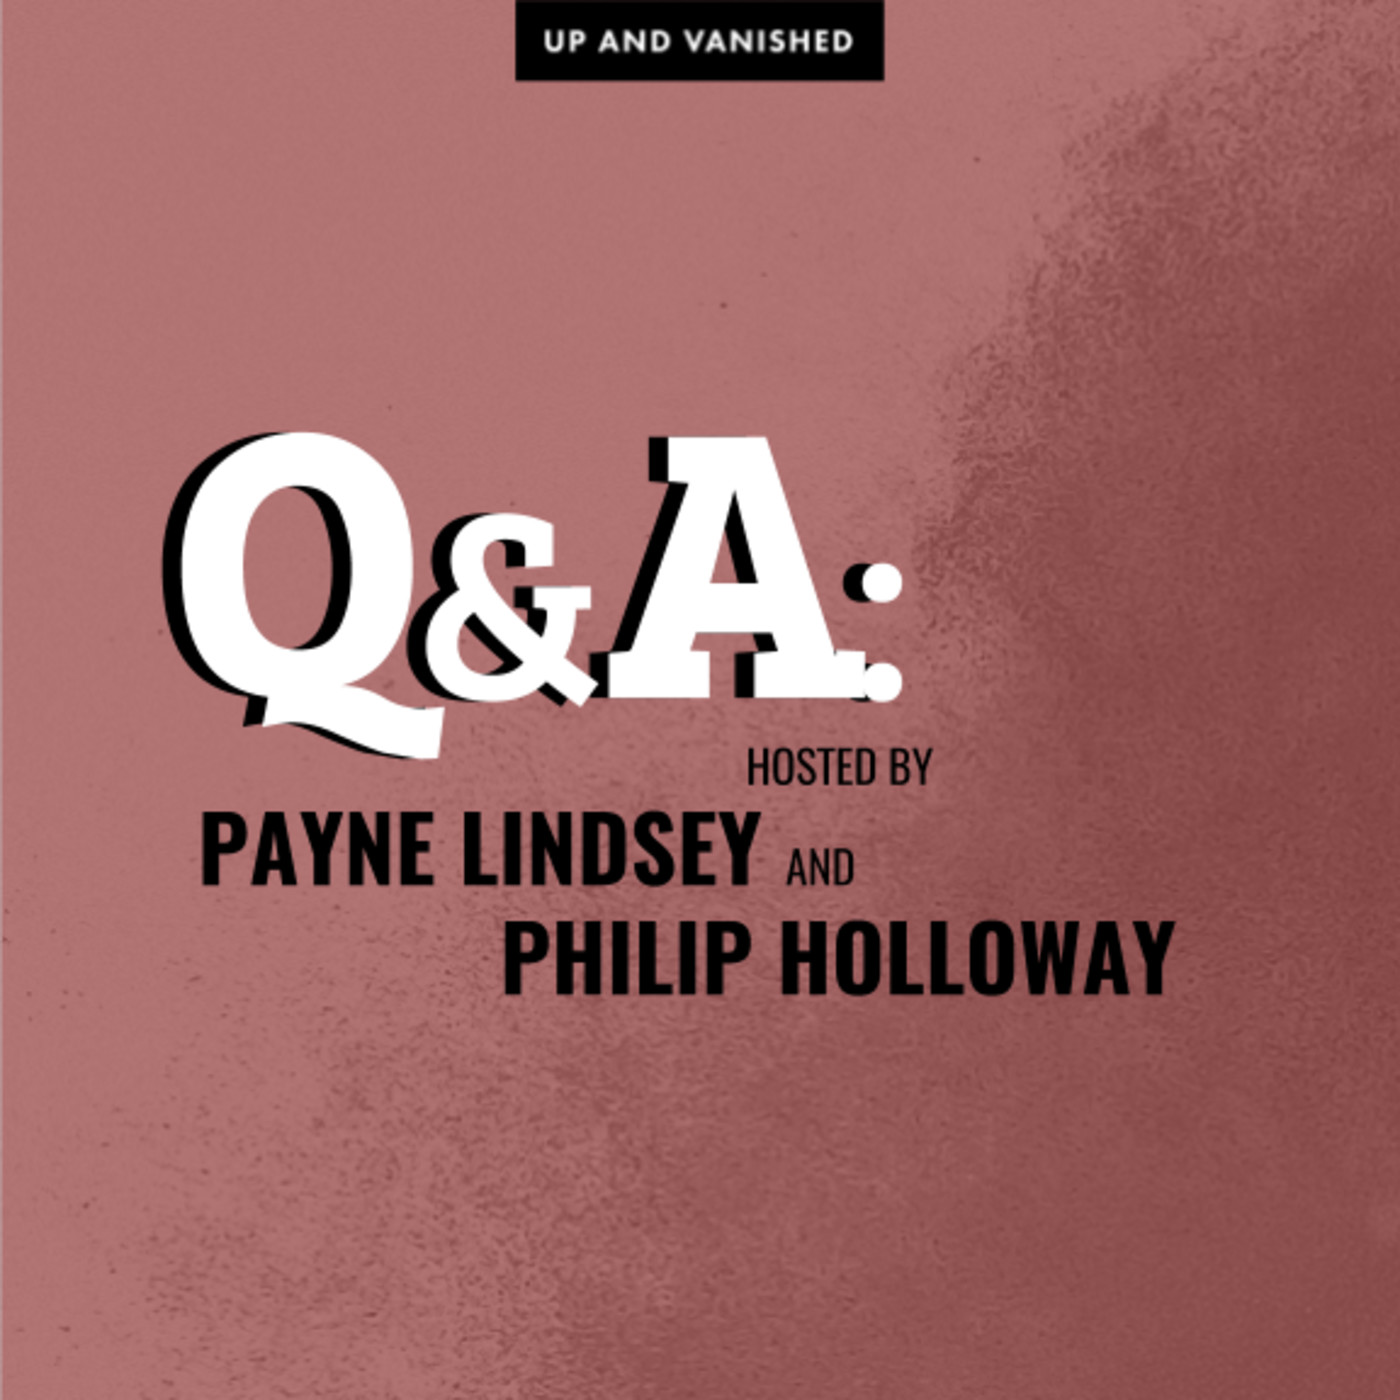 S1E : Q&A with Payne Lindsey and Philip Holloway 07.06.17